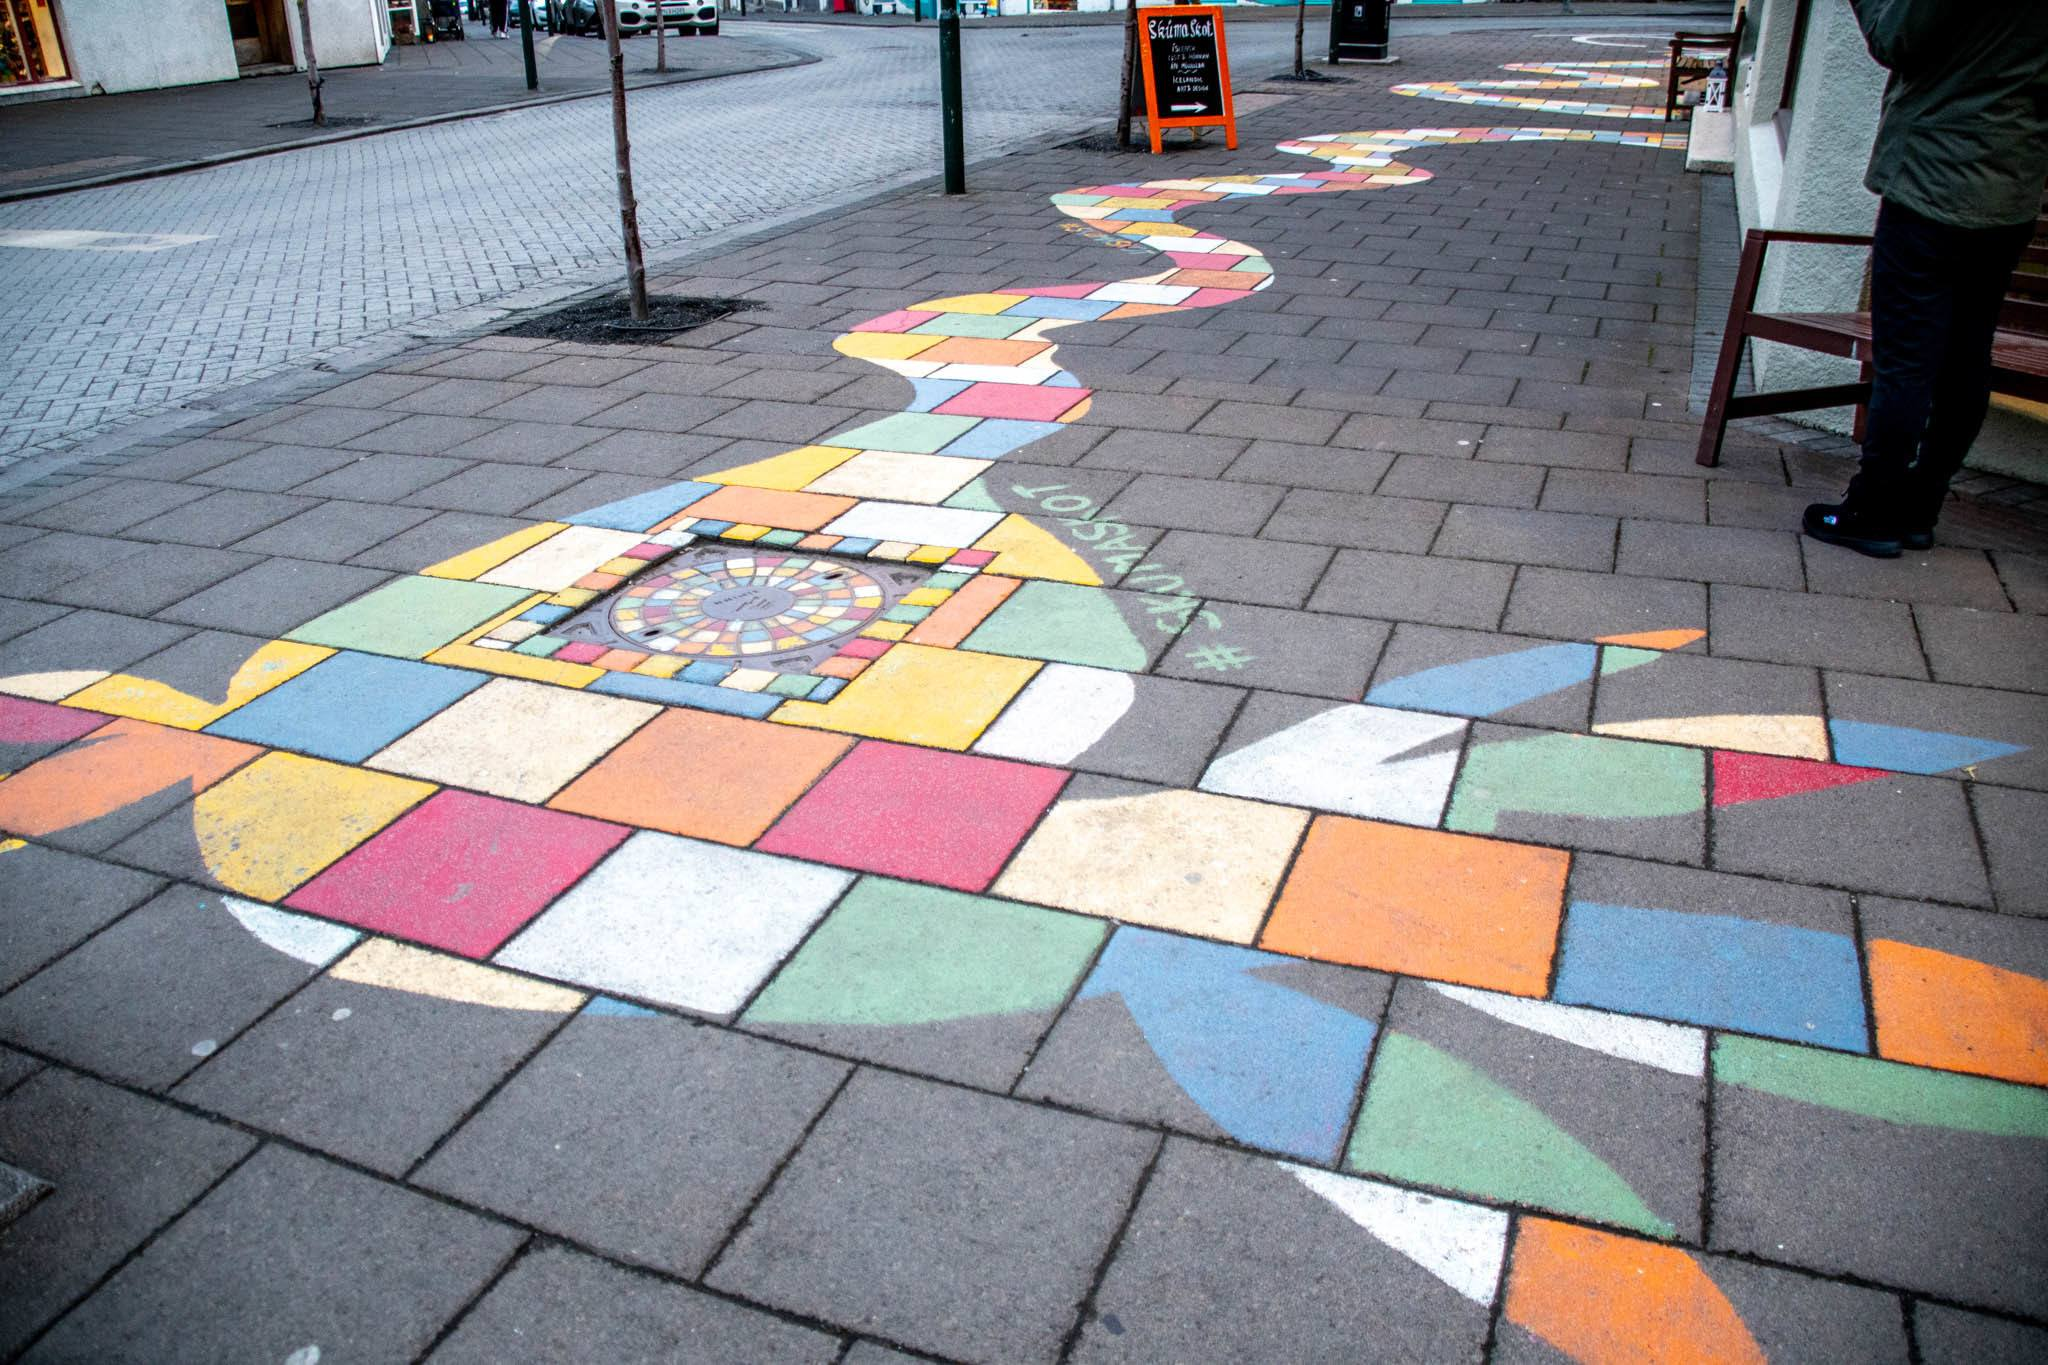 Iceland arts are both colorful and playful, as can be seen in this sidewalk art